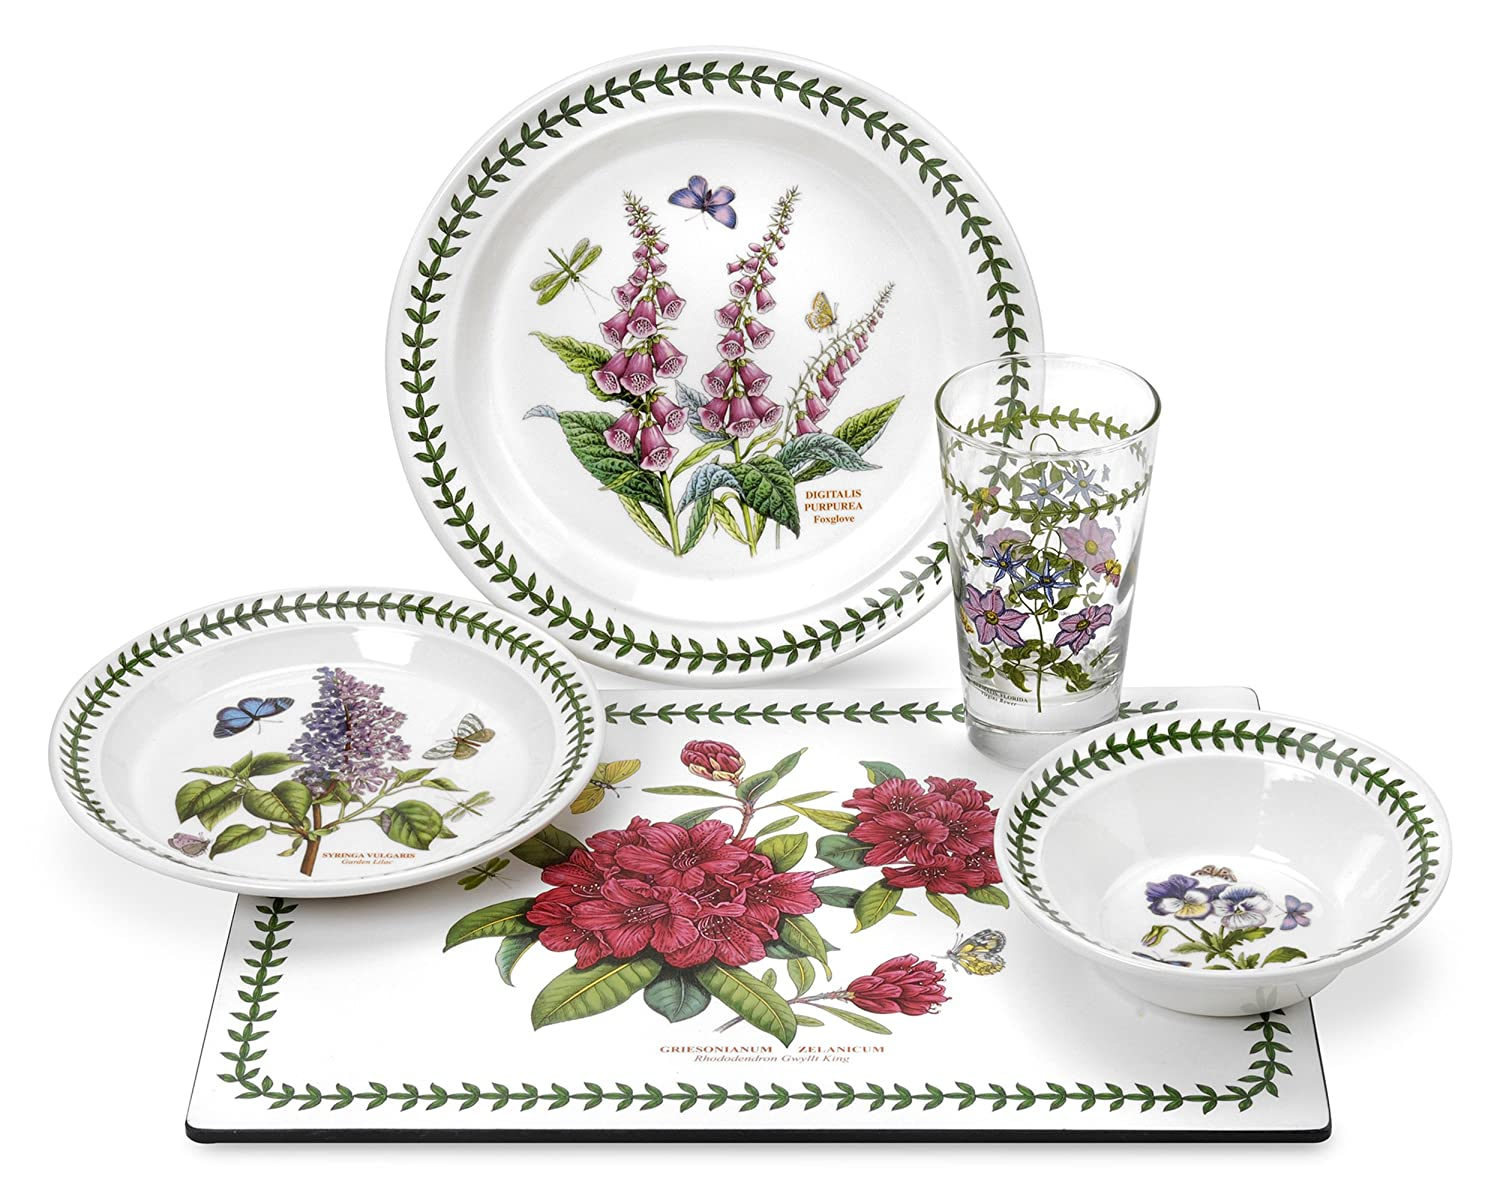 Portmeirion Dinnerware Botanic Garden 21 Piece Set